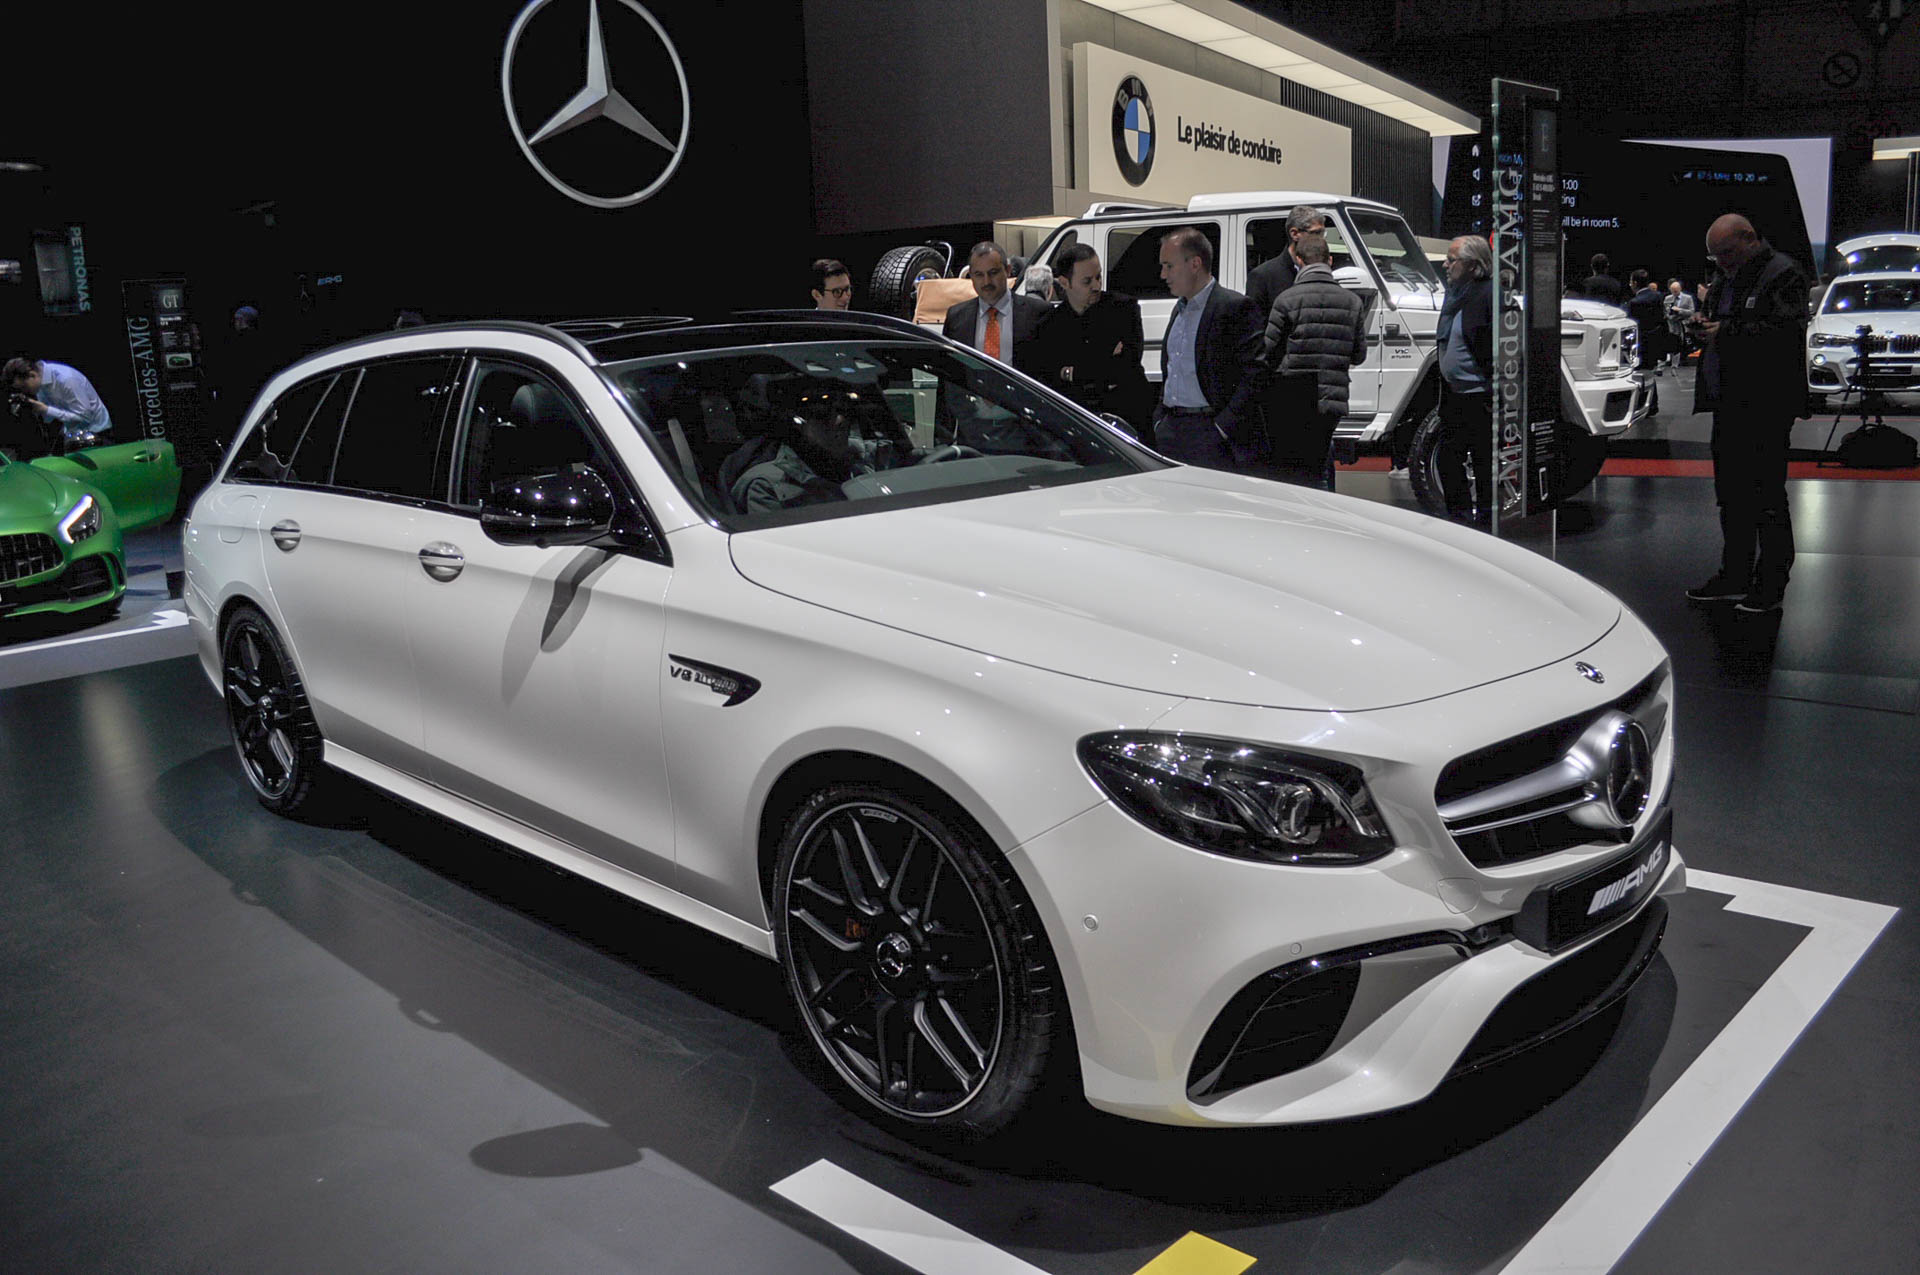 Mercedes amg unveils 603 hp 2018 e63 s wagon for Mercedes benz station wagon 2018